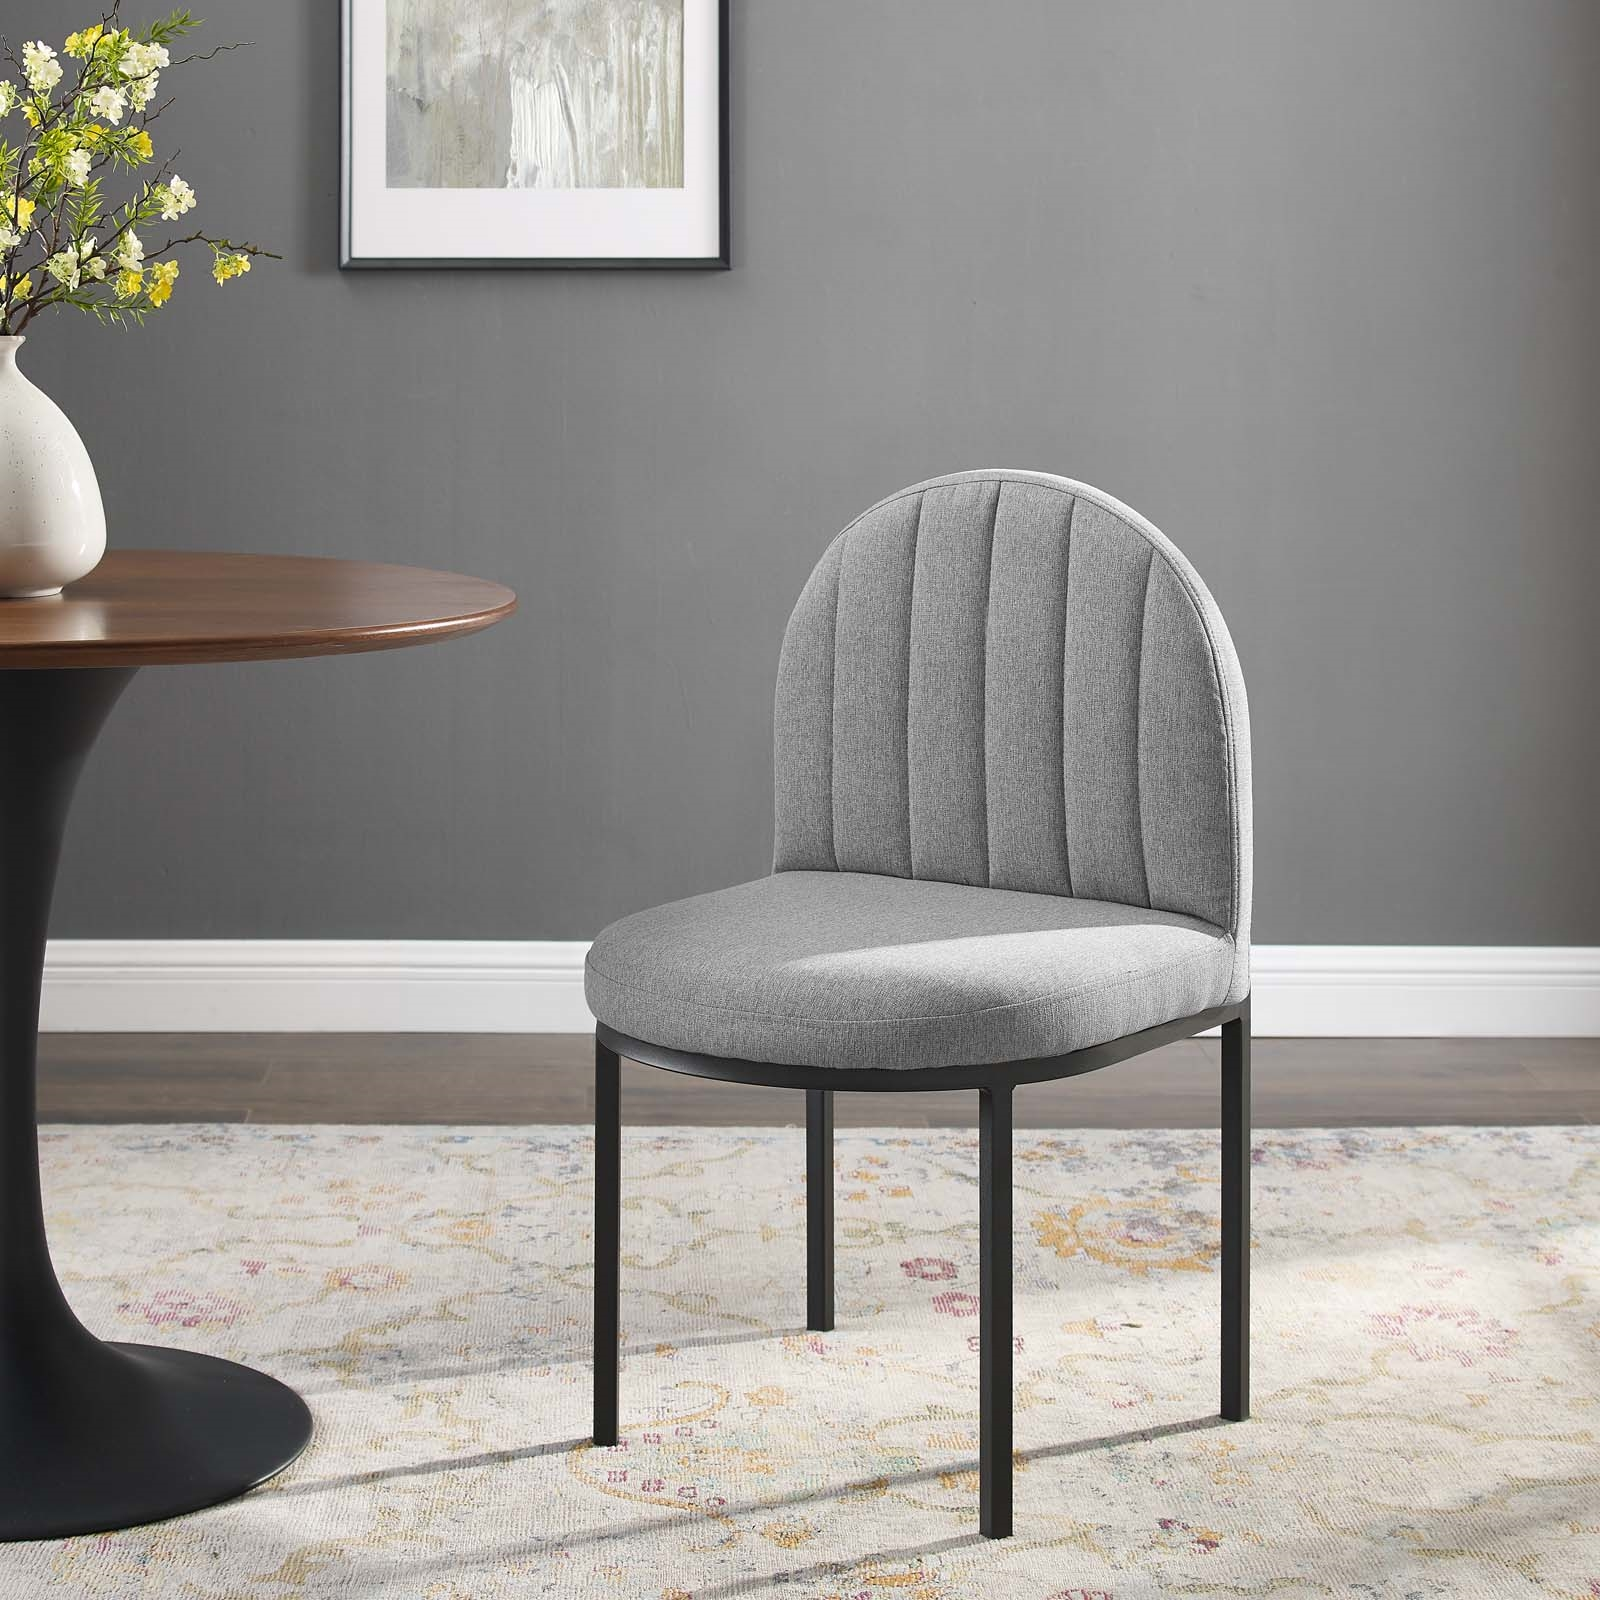 Isla Channel Tufted Upholstered Fabric Dining Side Chair in Black Light Gray